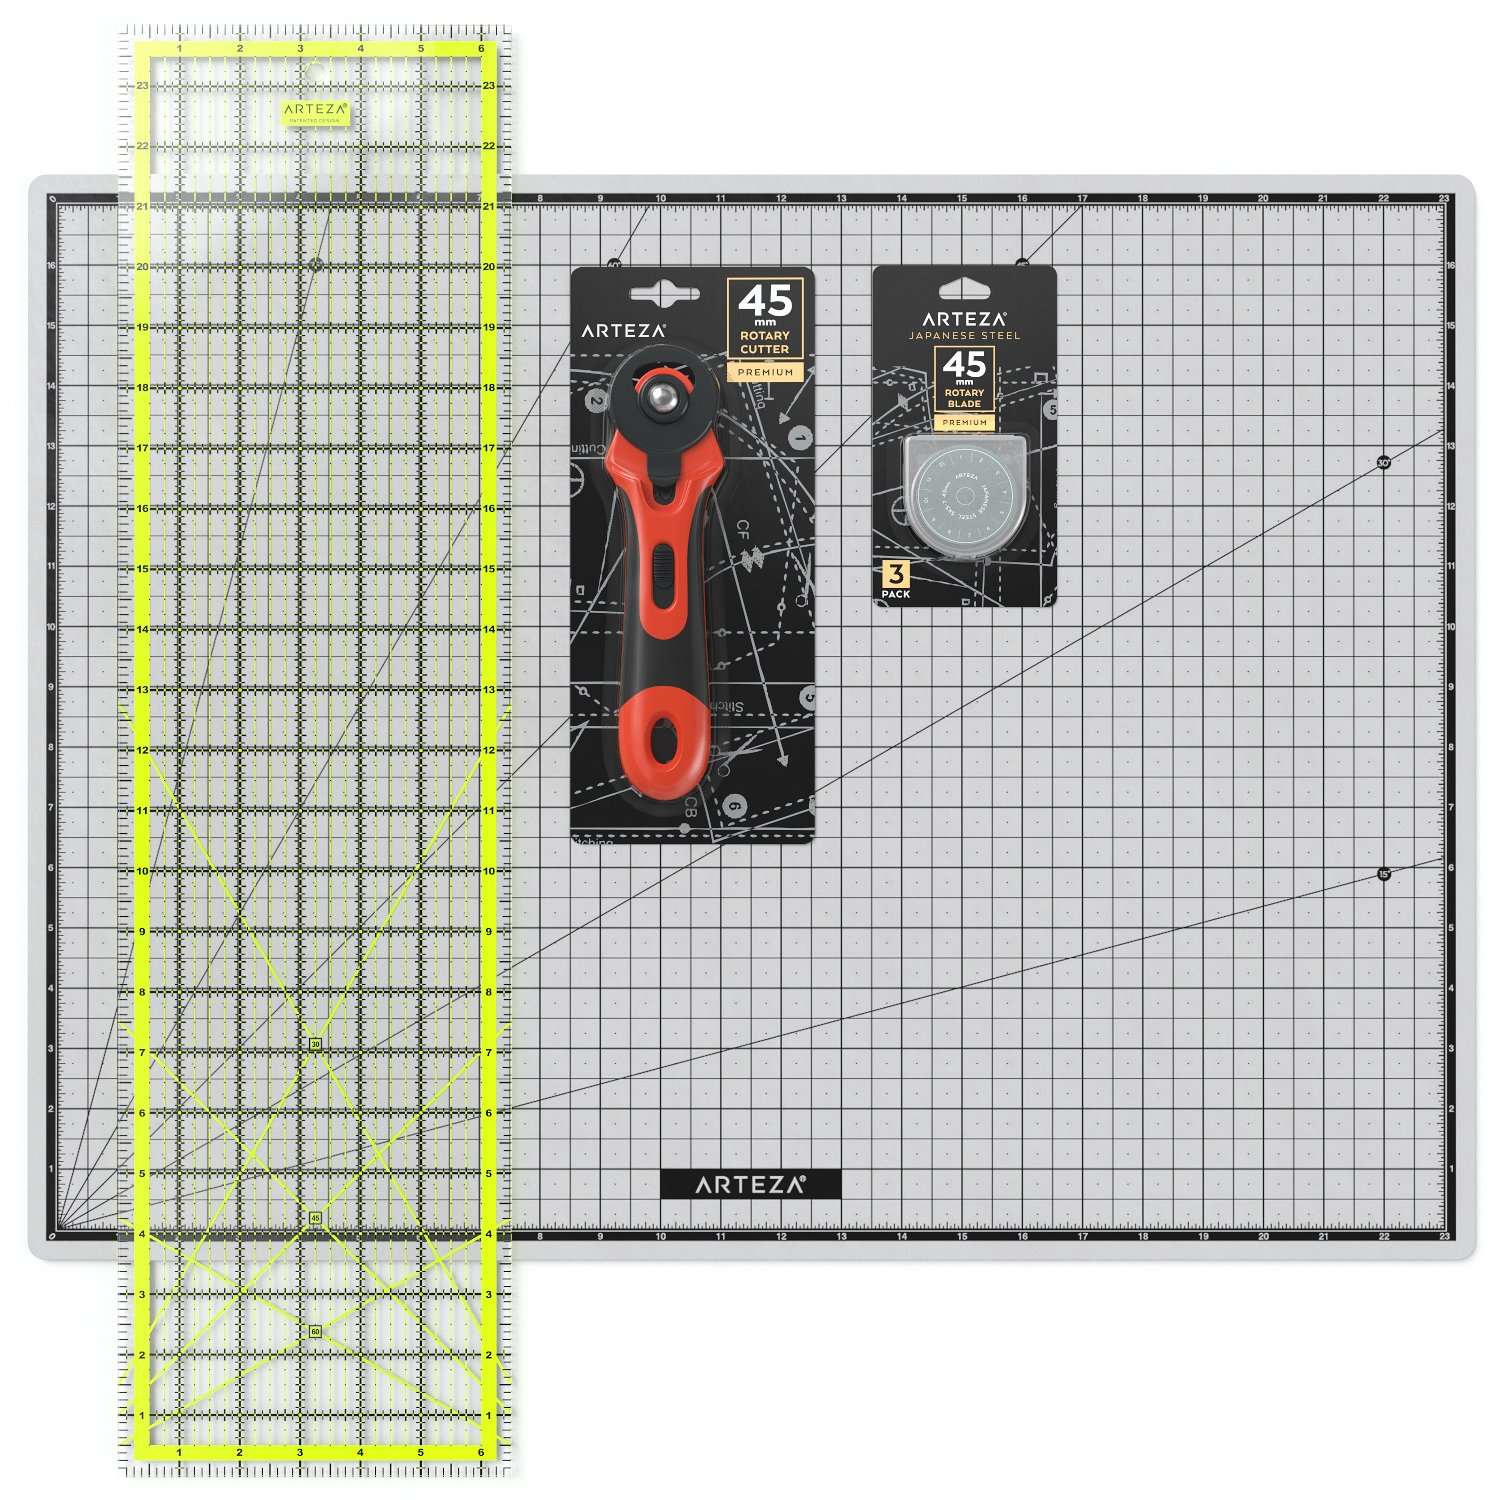 ARTEZA Rotary Cutter Quilting Kit, Set of 4 (6.5X24 Ruler, 18X24 Mat, 45mm Cutter, 45mm Blades 3 Pack) by ARTEZA